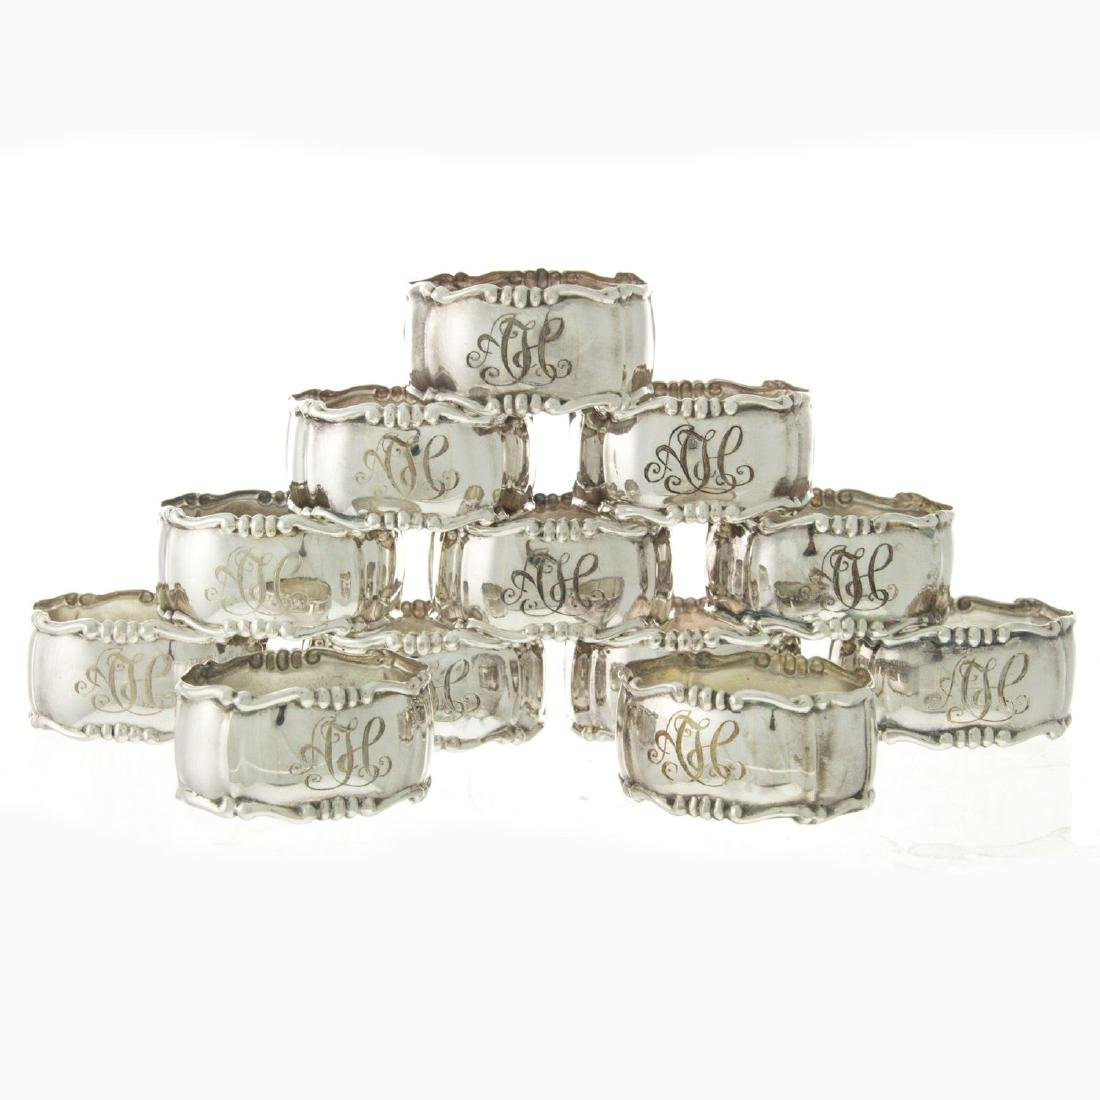 Set of 12 Sterling Silver Napkin Rings.